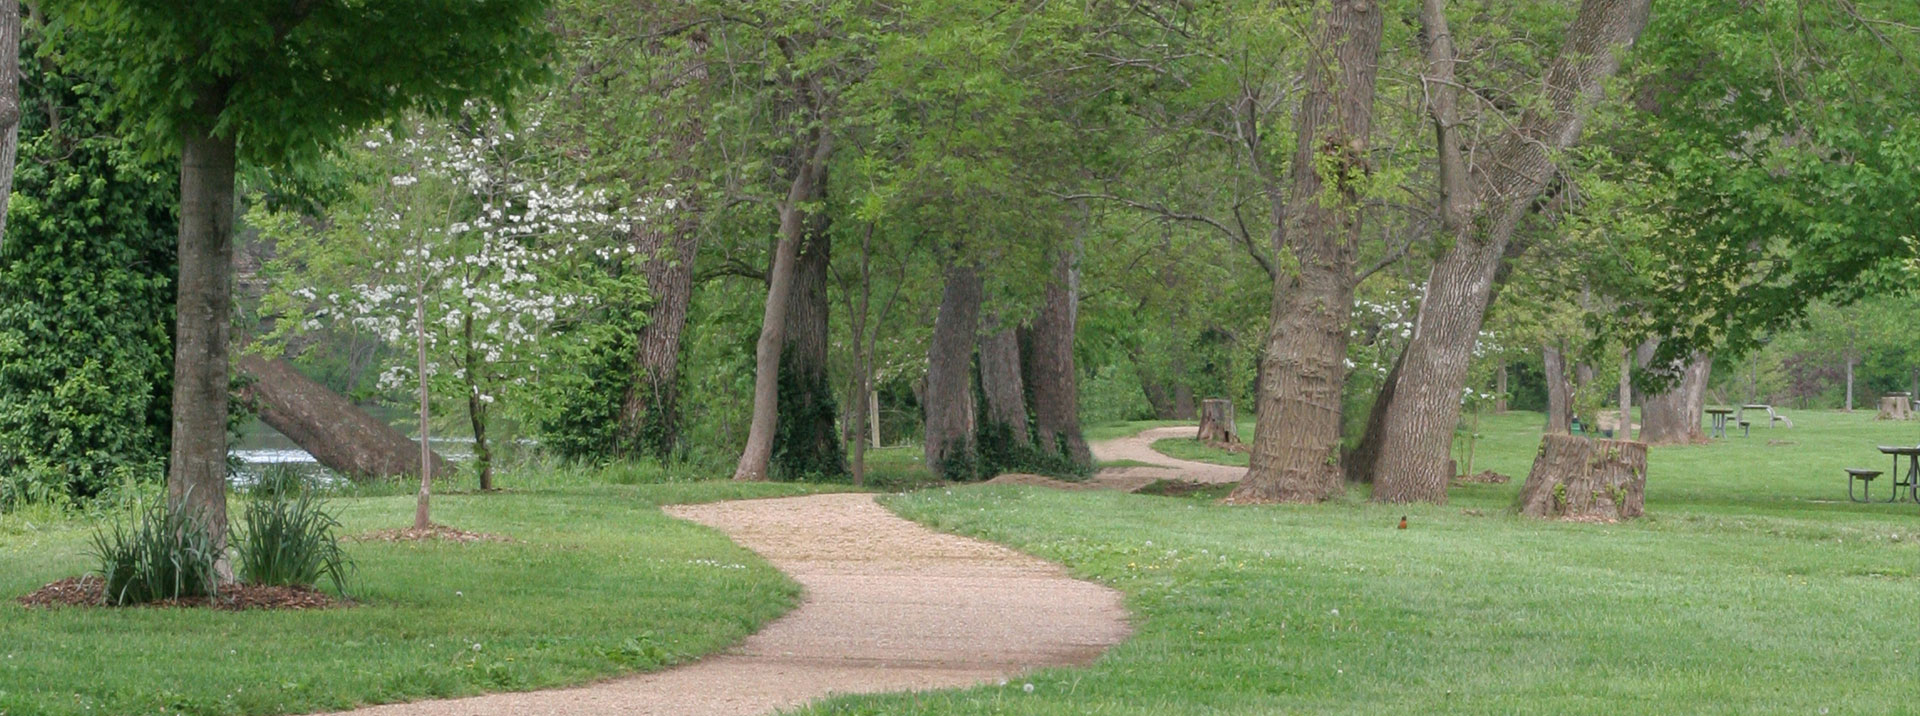 Pathway with trees and grass